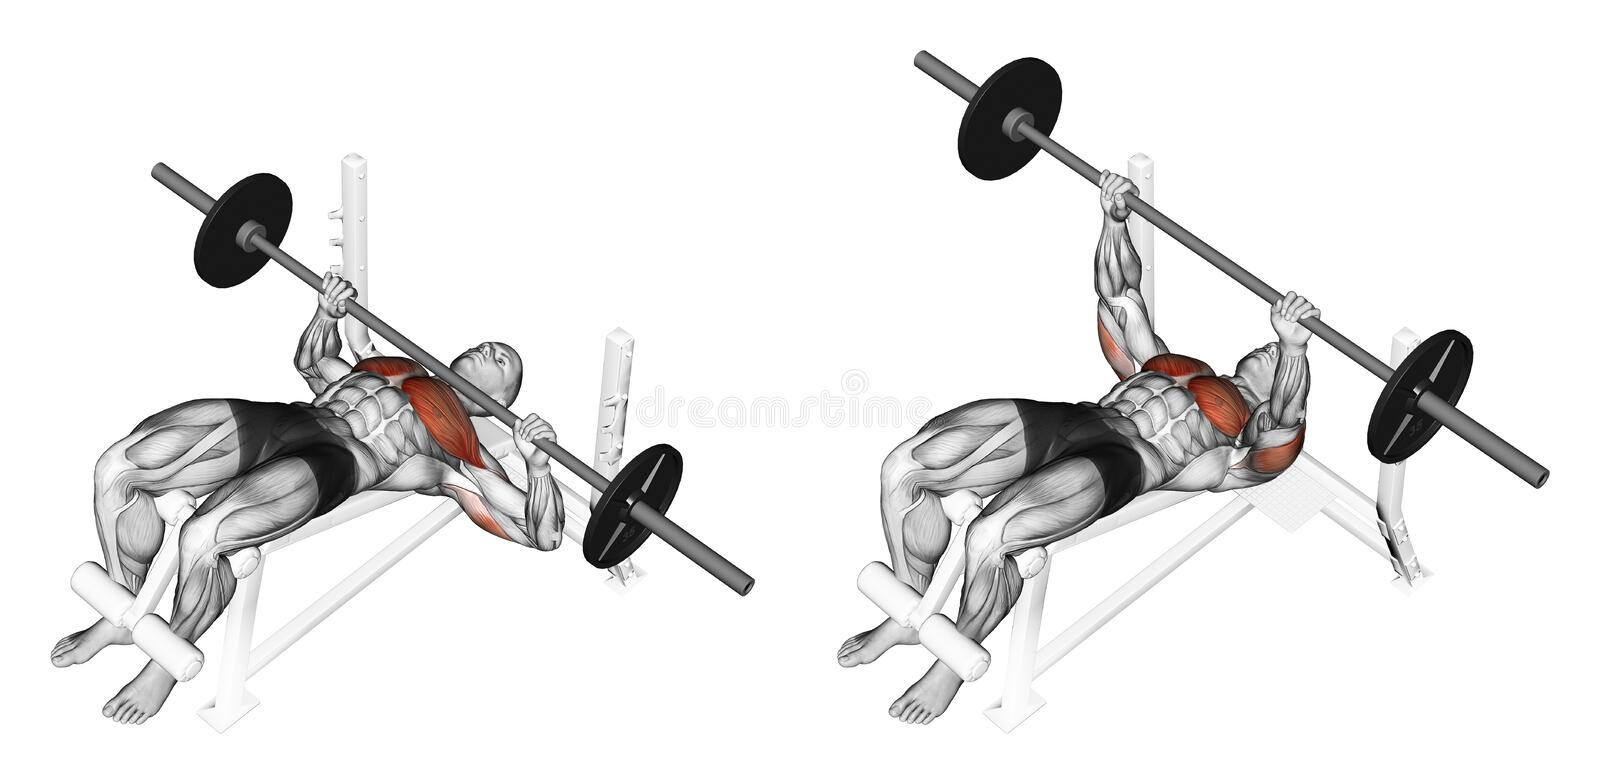 Exercising. Press Of A Bar, Lying On A Bench With Stock Illustration